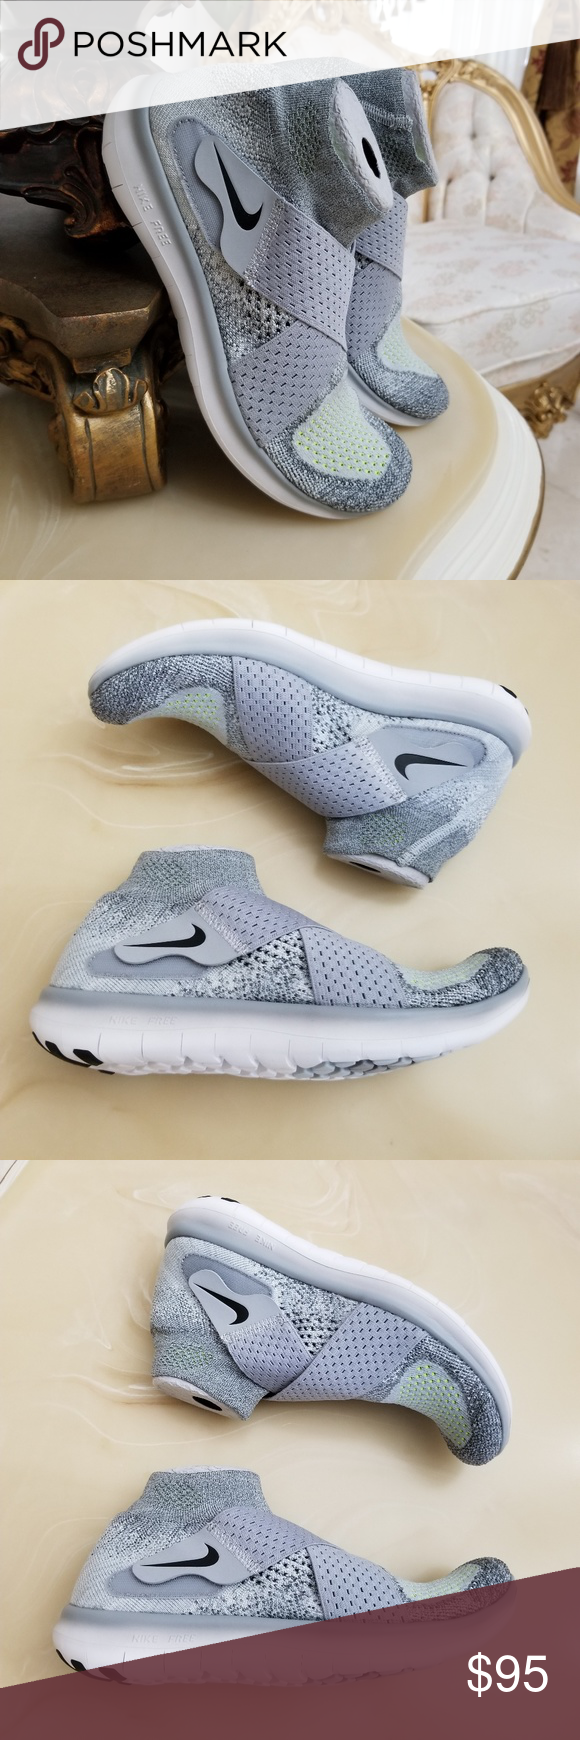 new arrival b3009 d8c18 Nike Women's Free RN Motion Flyknit 2017 New Without Box ...